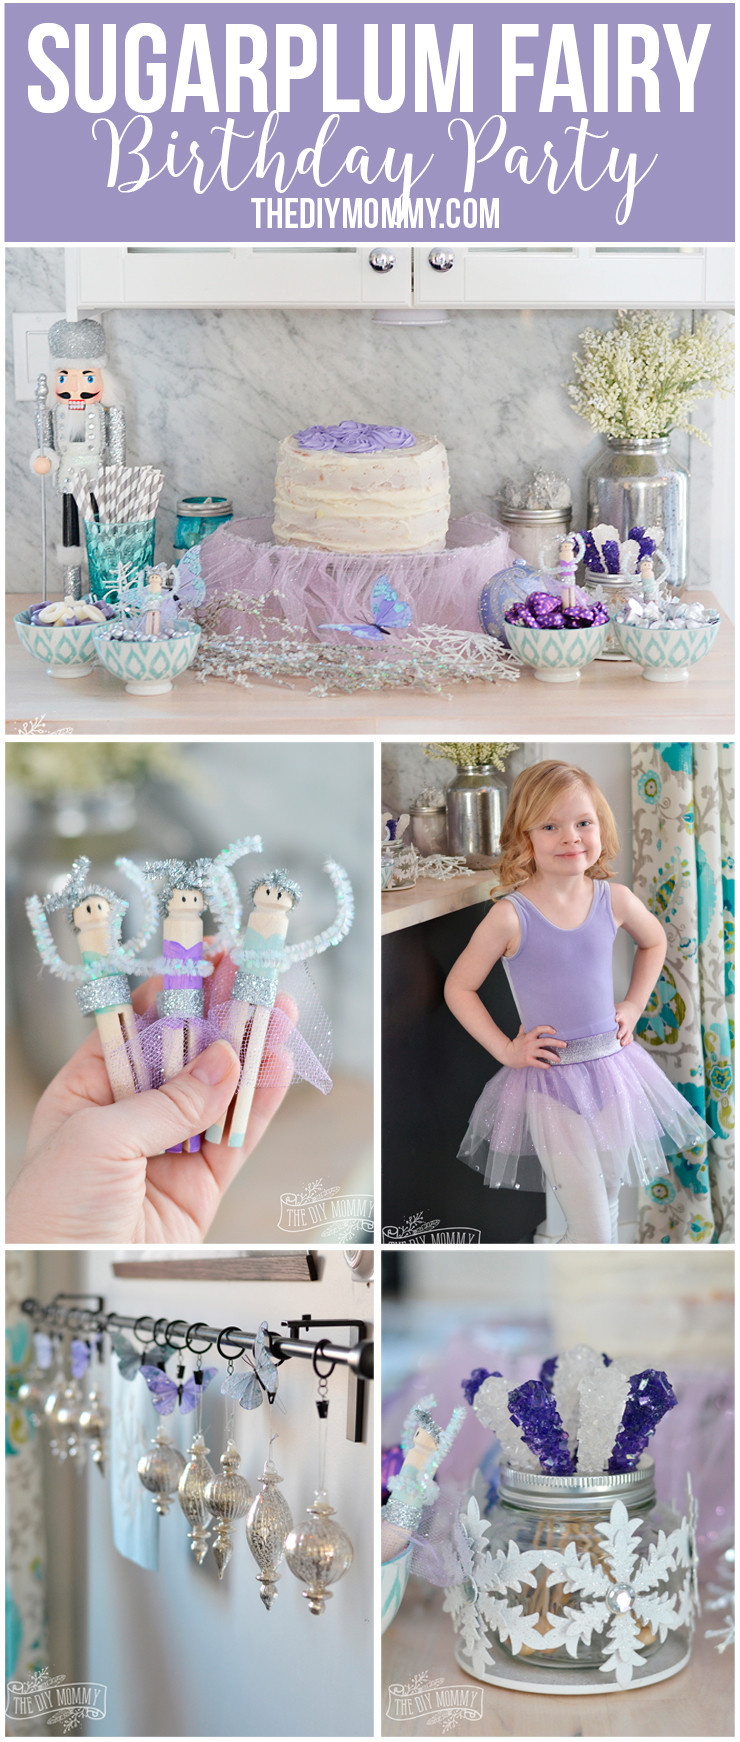 Best ideas about DIY Party Decorations . Save or Pin Sugar Plum Fairy Nutcracker Ballerina Party Ideas DIY Now.